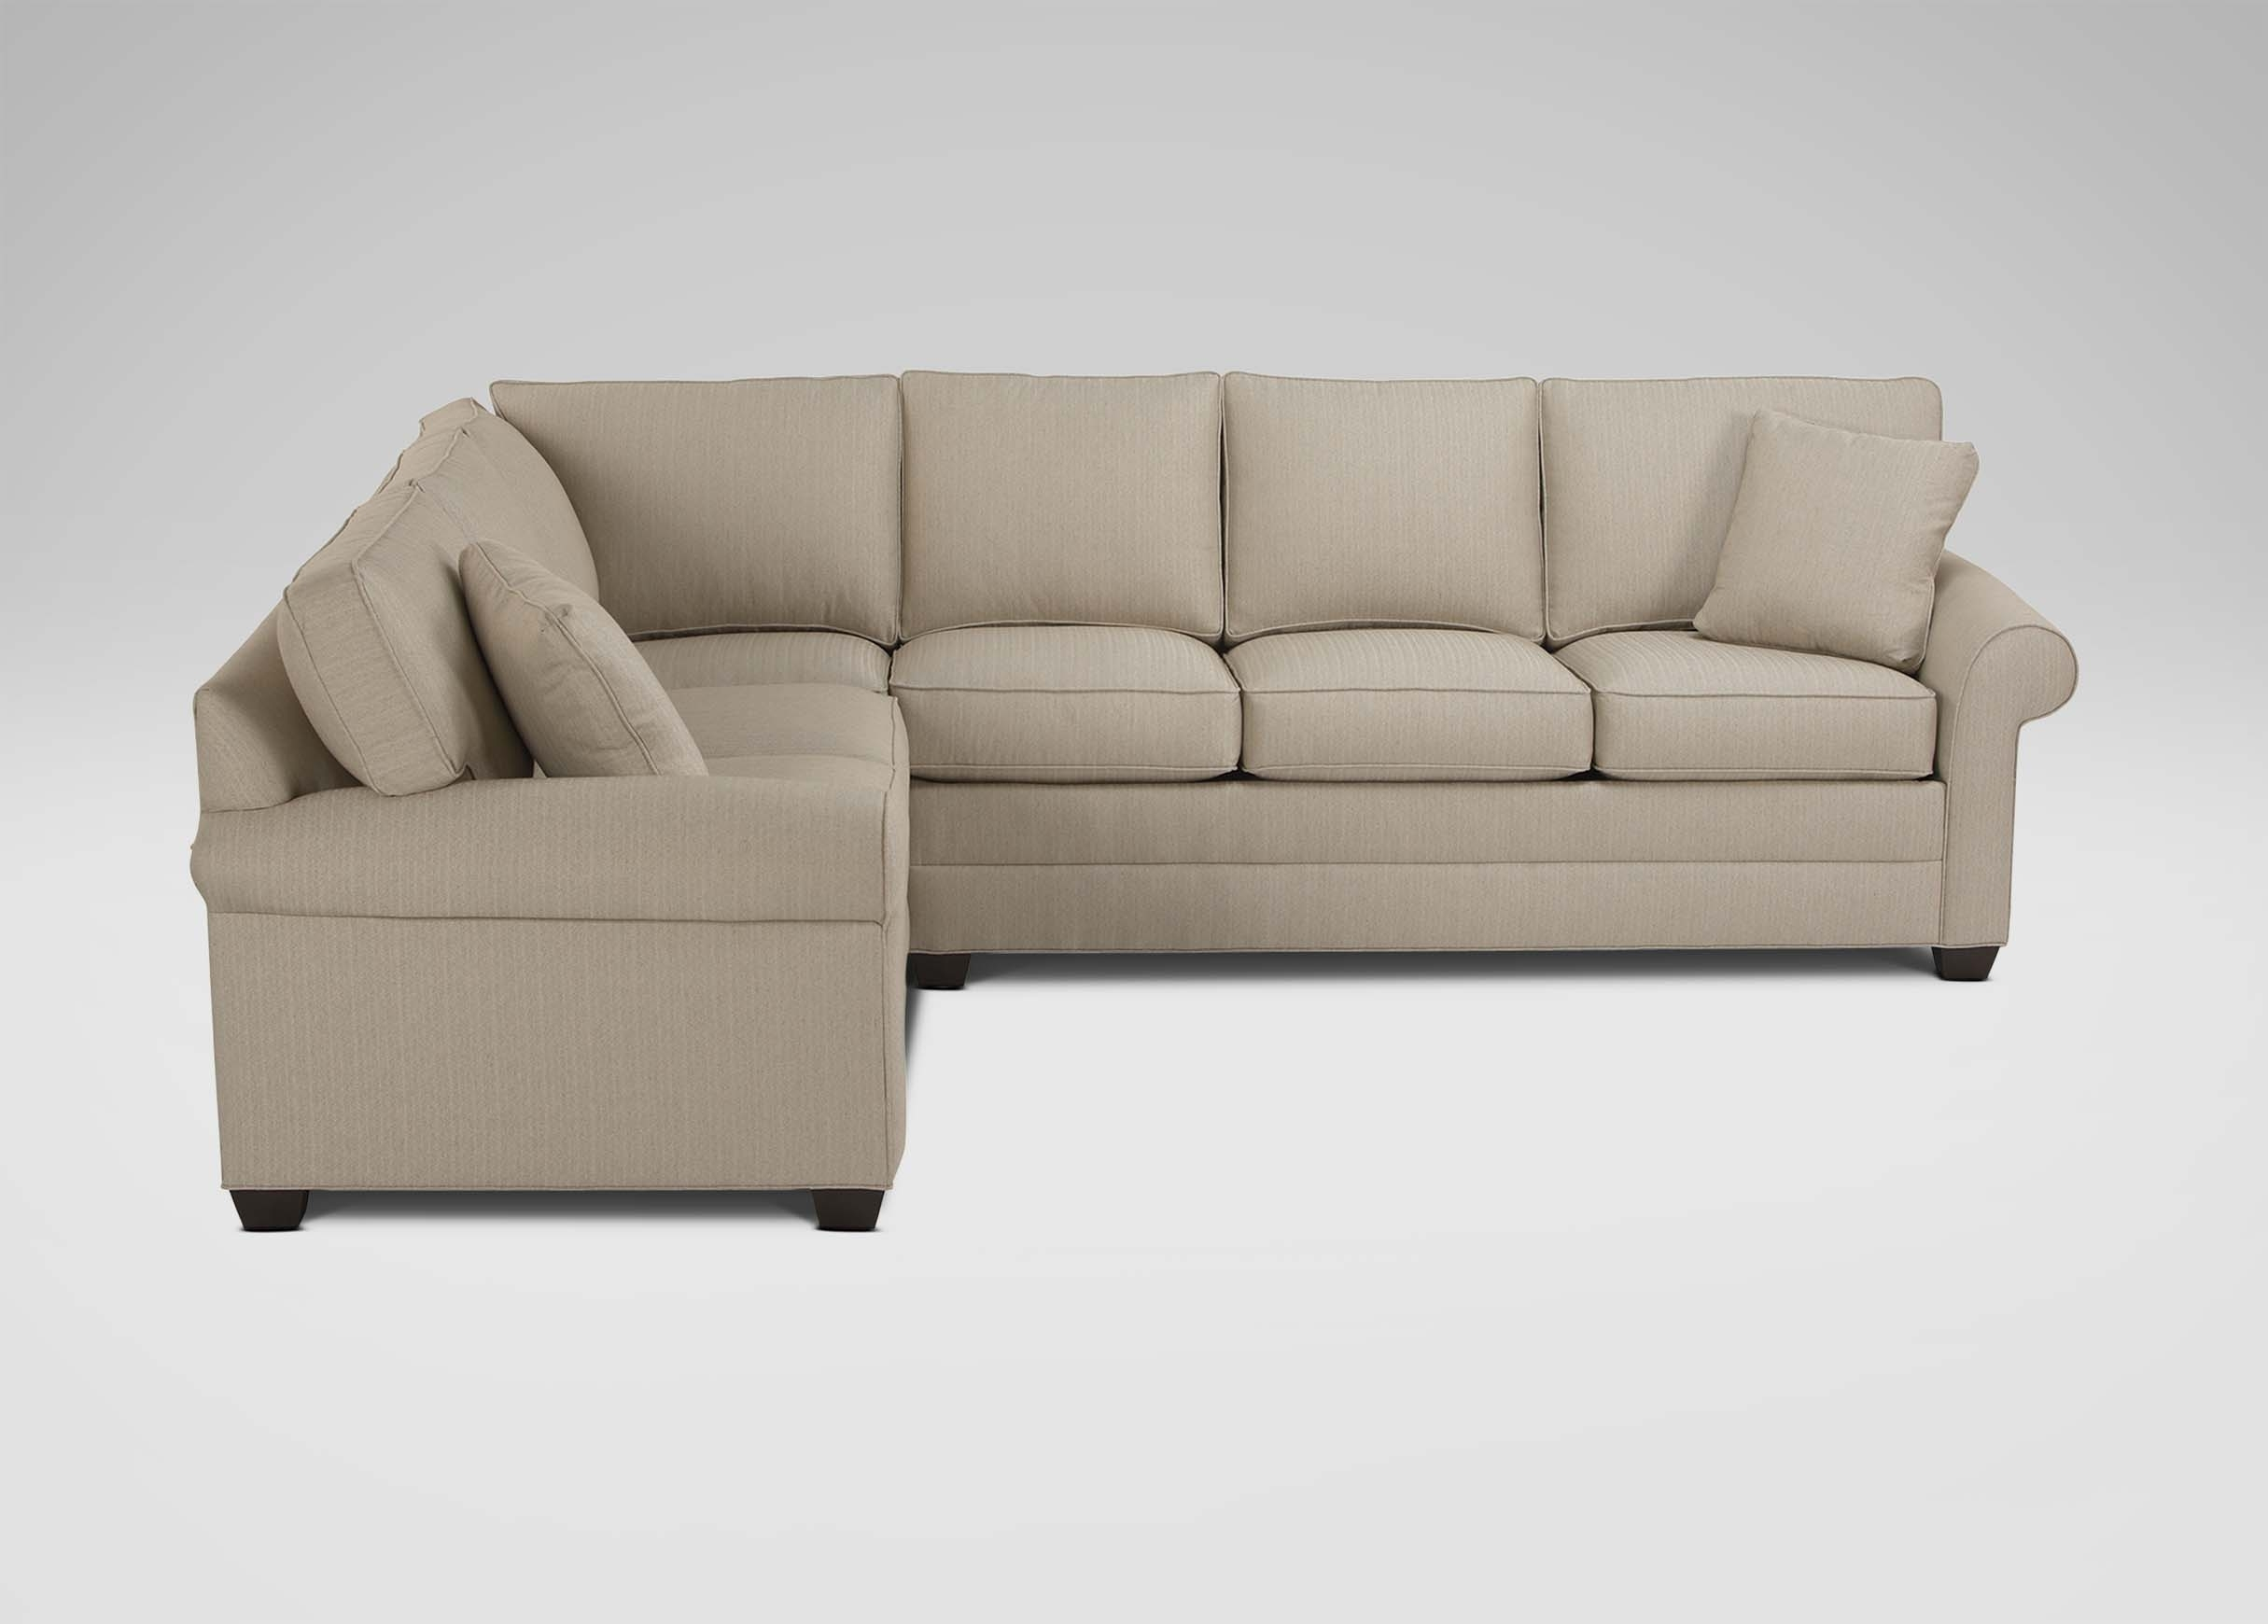 Bennett Roll-Arm Sectional | Sectionals pertaining to Sectional Sofas At Ethan Allen (Image 1 of 10)